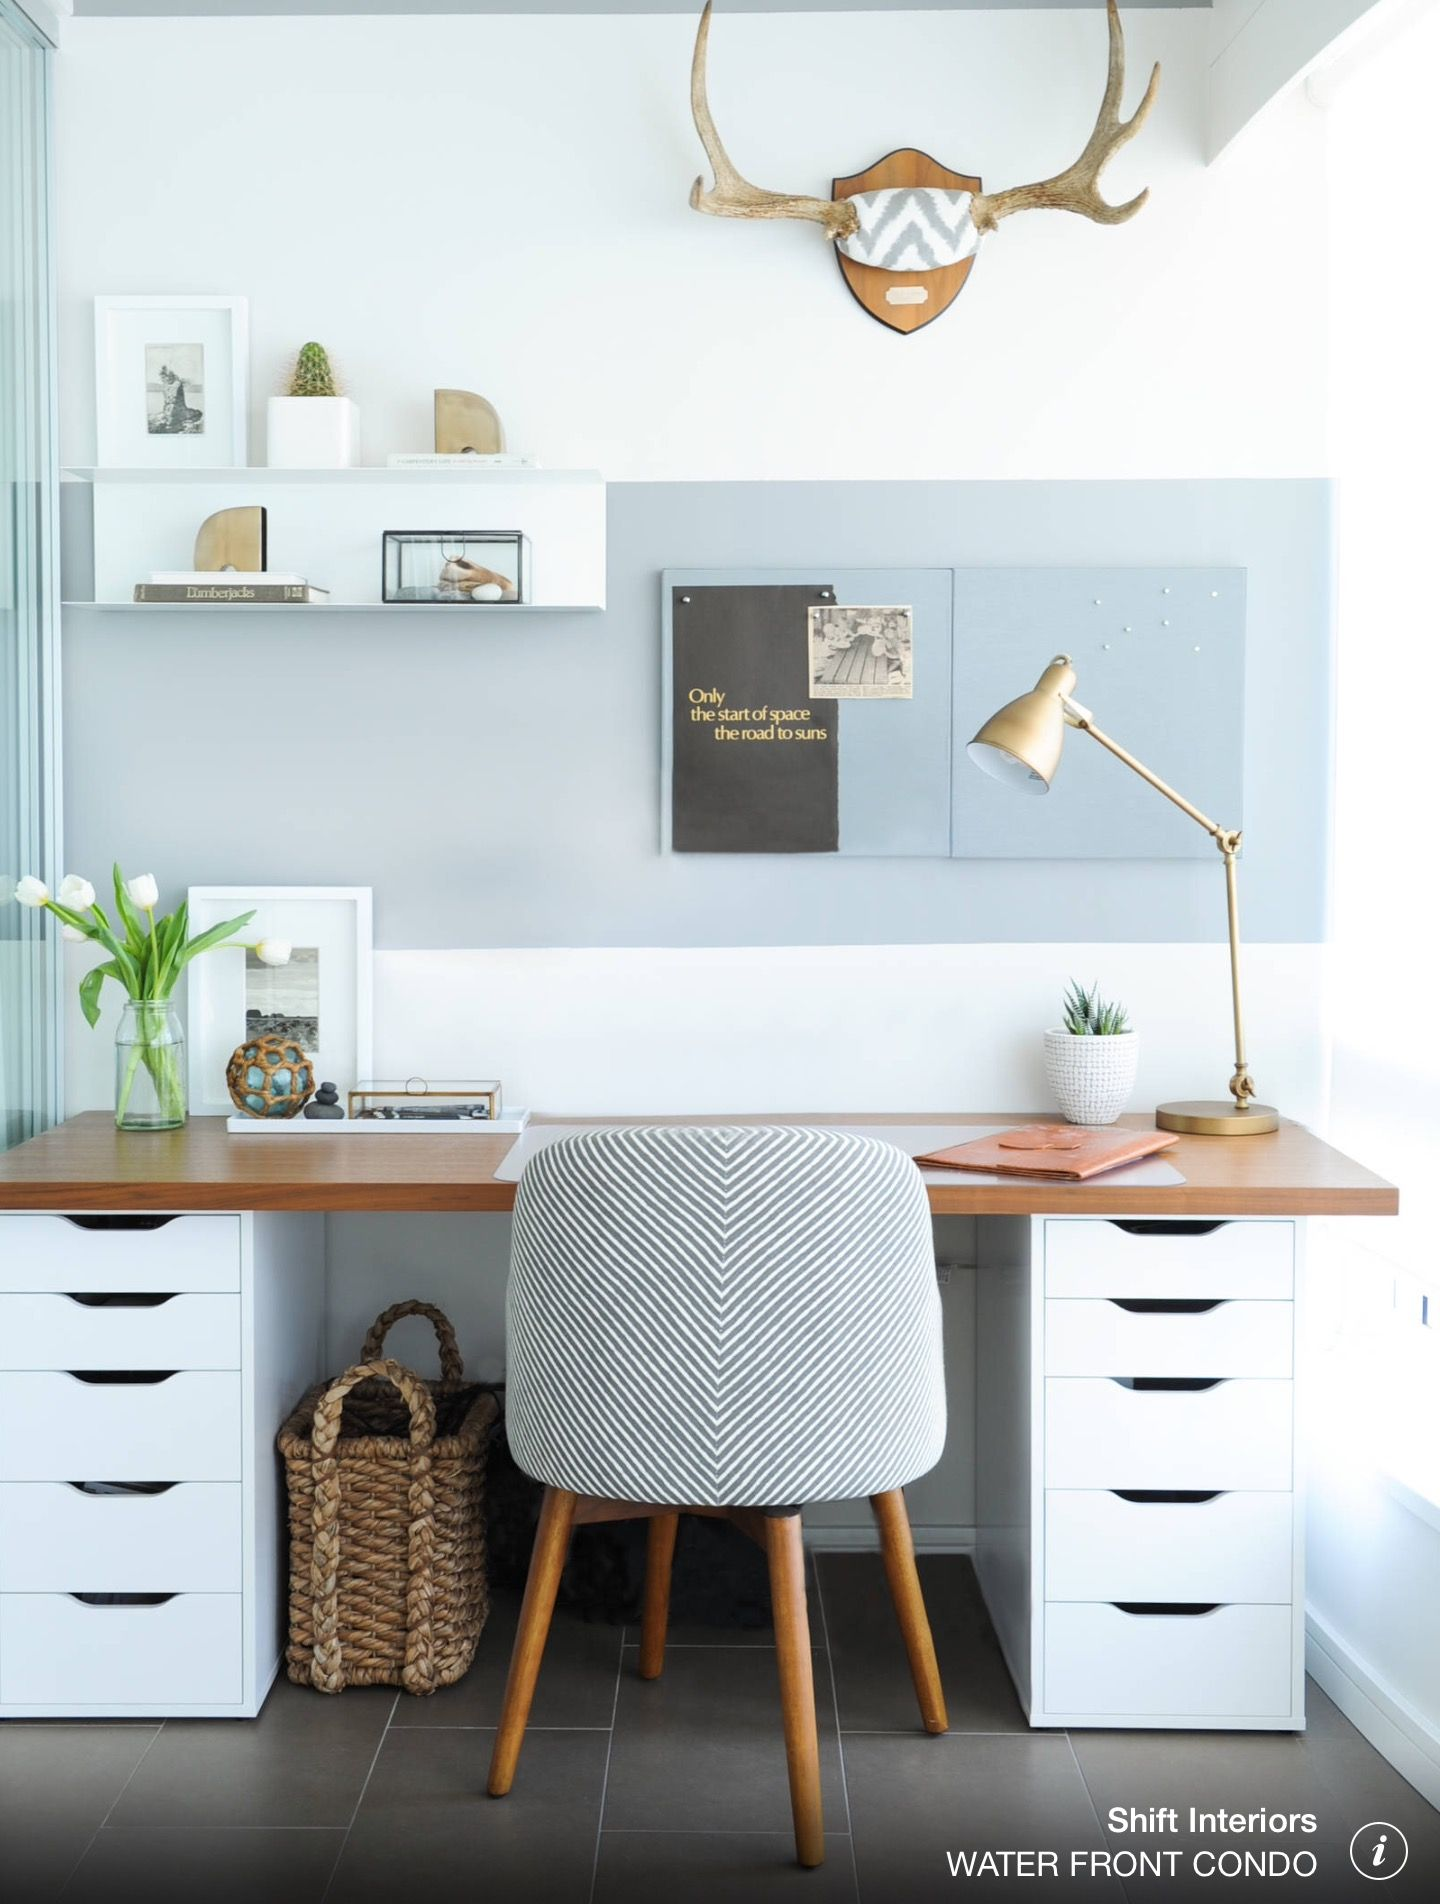 Small Home Office With Gray And White Striped Wall Wood Desk Tile Floor Patterned Chair Shift Interiors